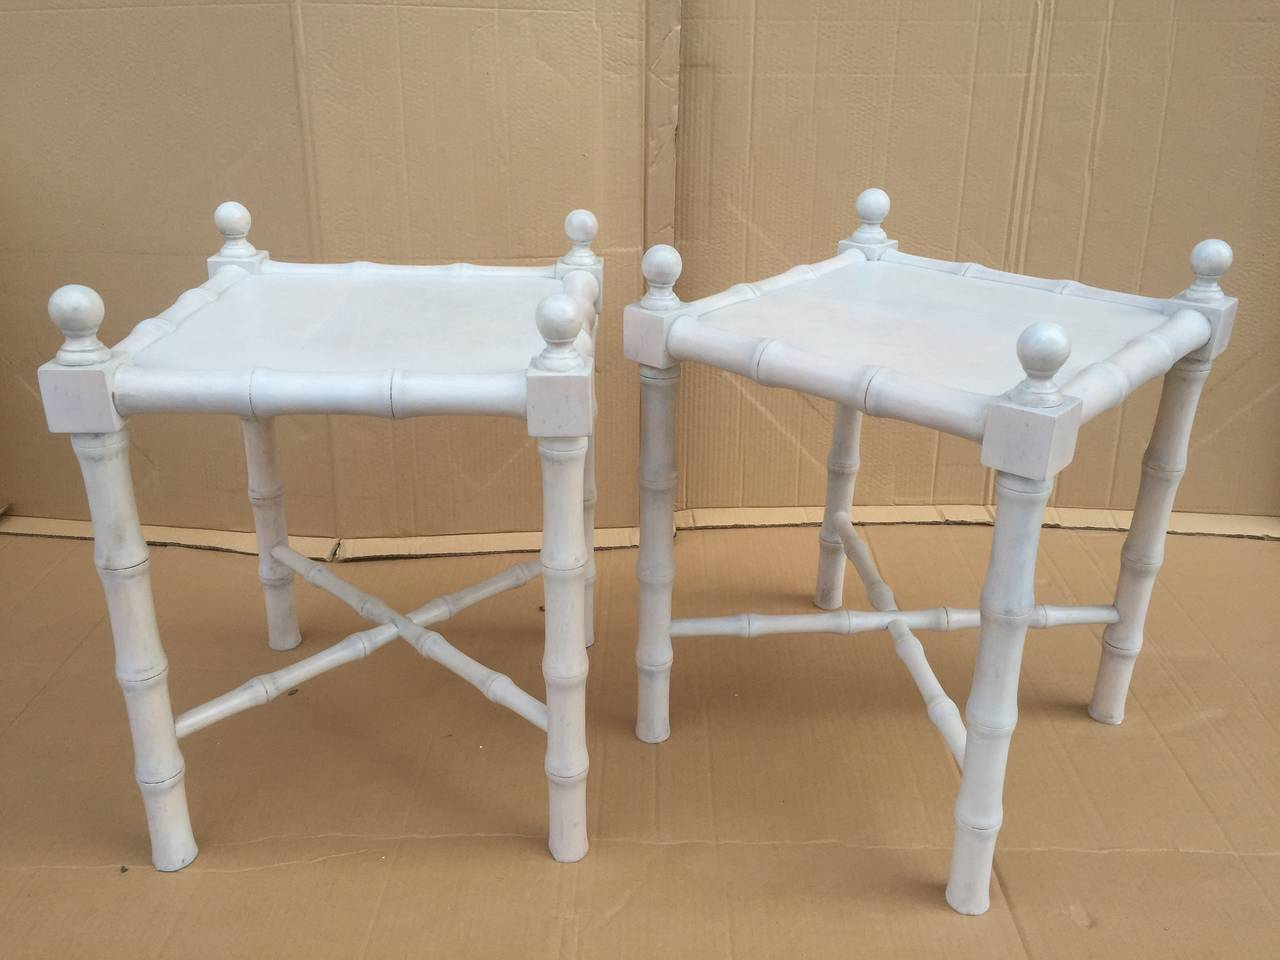 Pair of Mid-Century Modern small white washed faux bamboo end or nightstand tables.  This item is on sale for a clearance price.